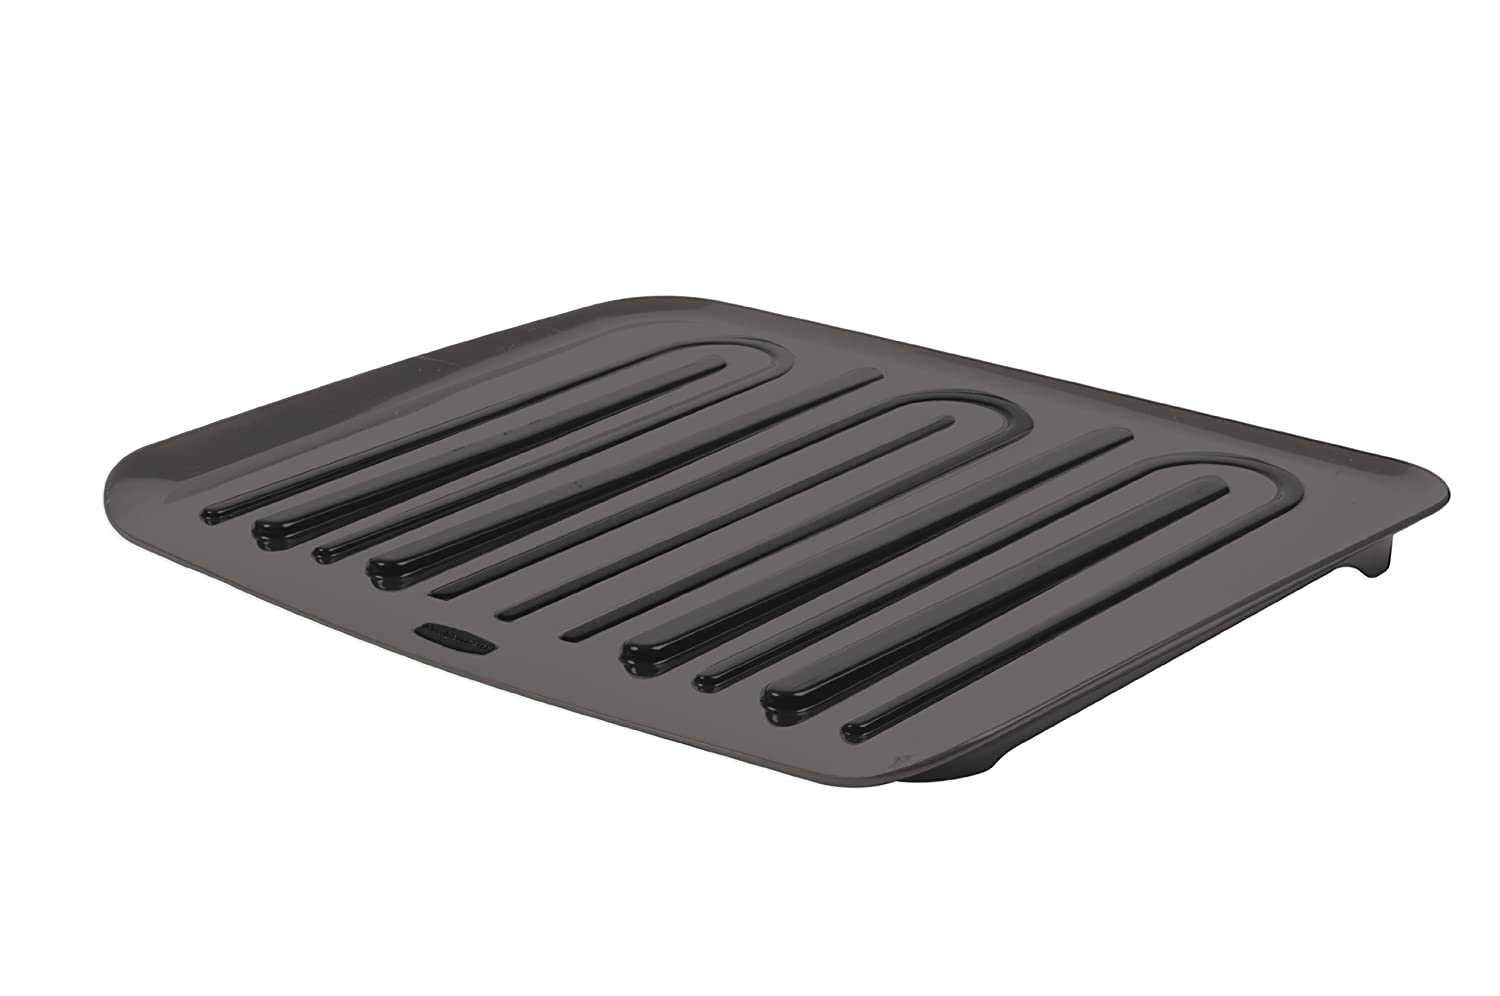 new rubbermaid antimicrobial drain board large black ebay. Black Bedroom Furniture Sets. Home Design Ideas